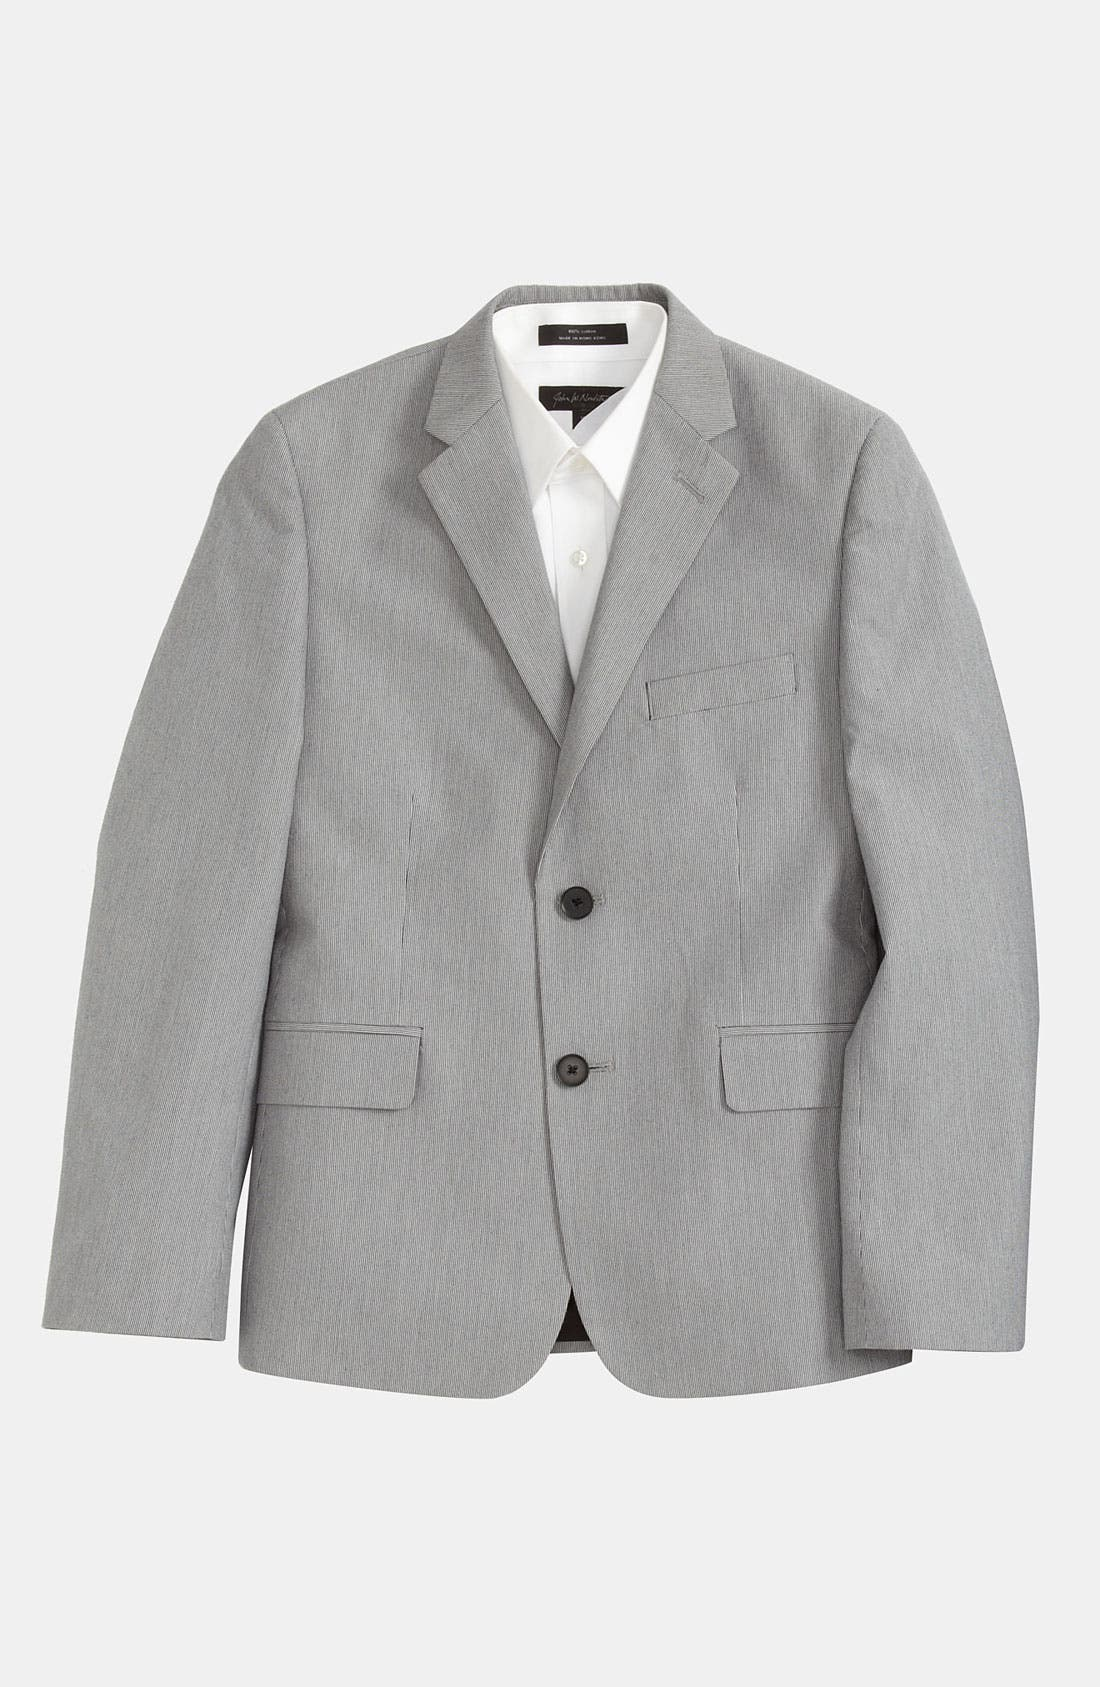 Alternate Image 1 Selected - C2 By Calibrate Corded Stripe Suit Jacket (Big Boys)